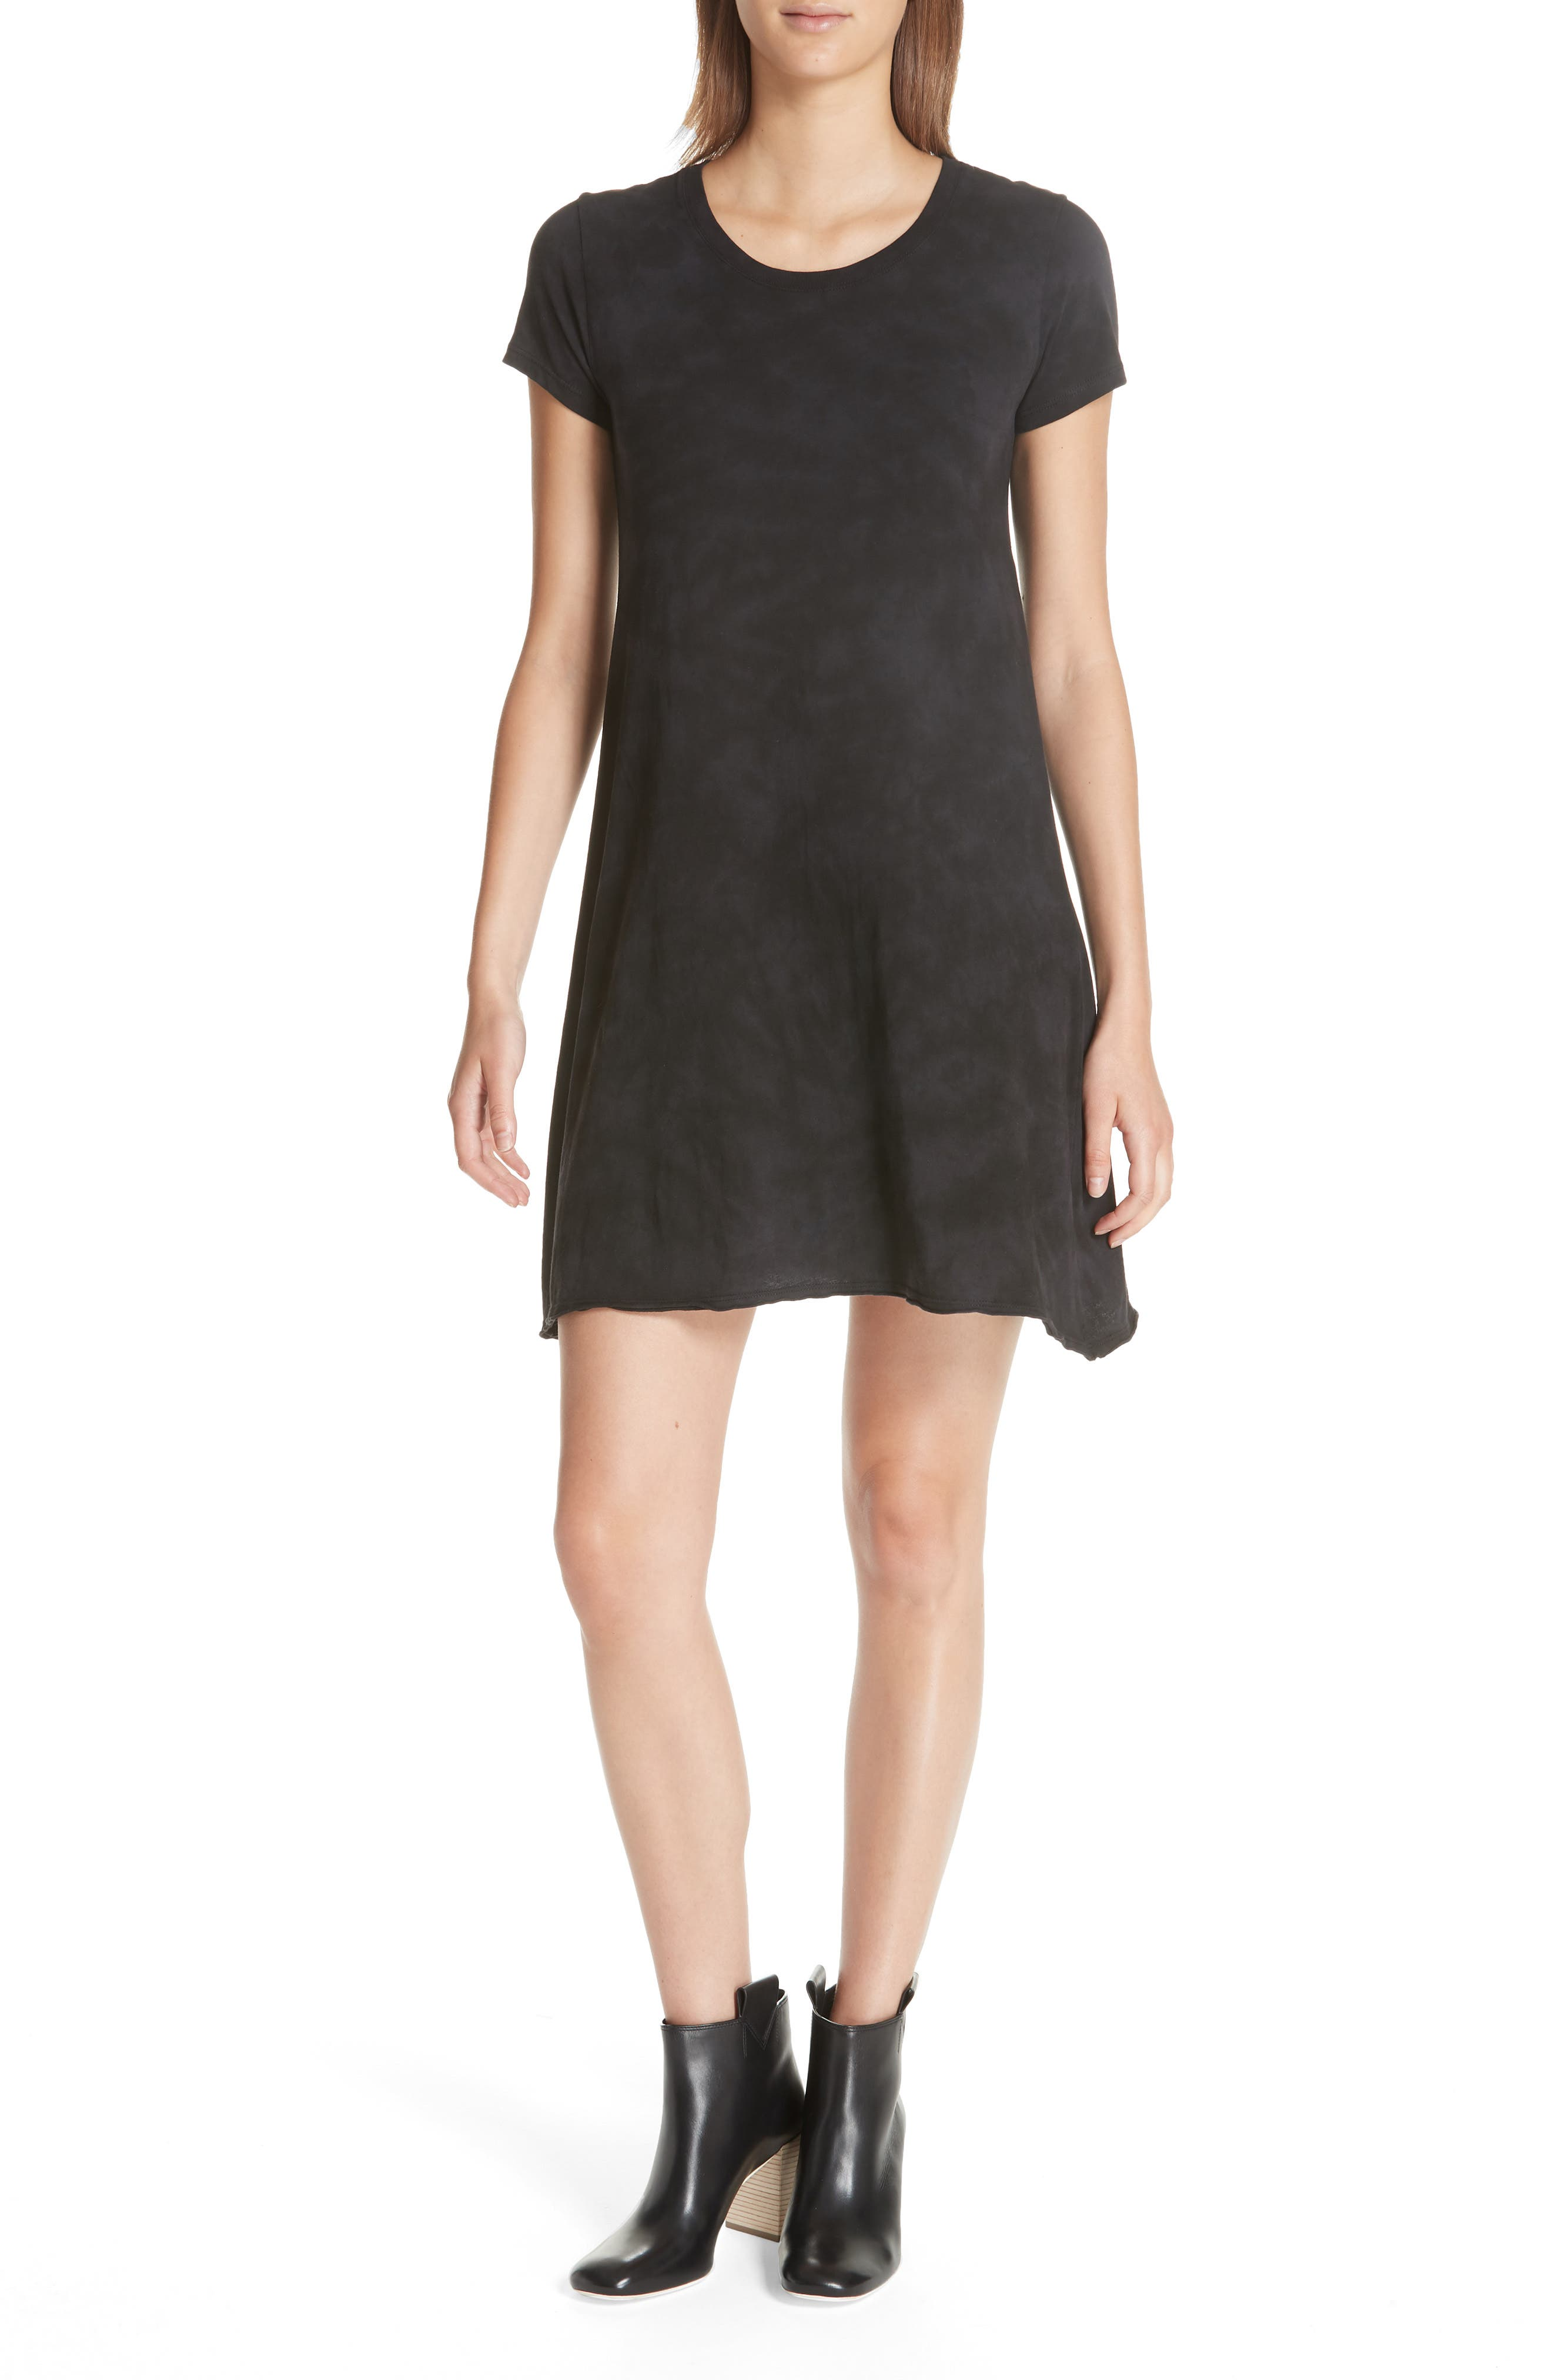 Atm Anthony Thomas Melillo Soda Wash Cotton Dress, Black